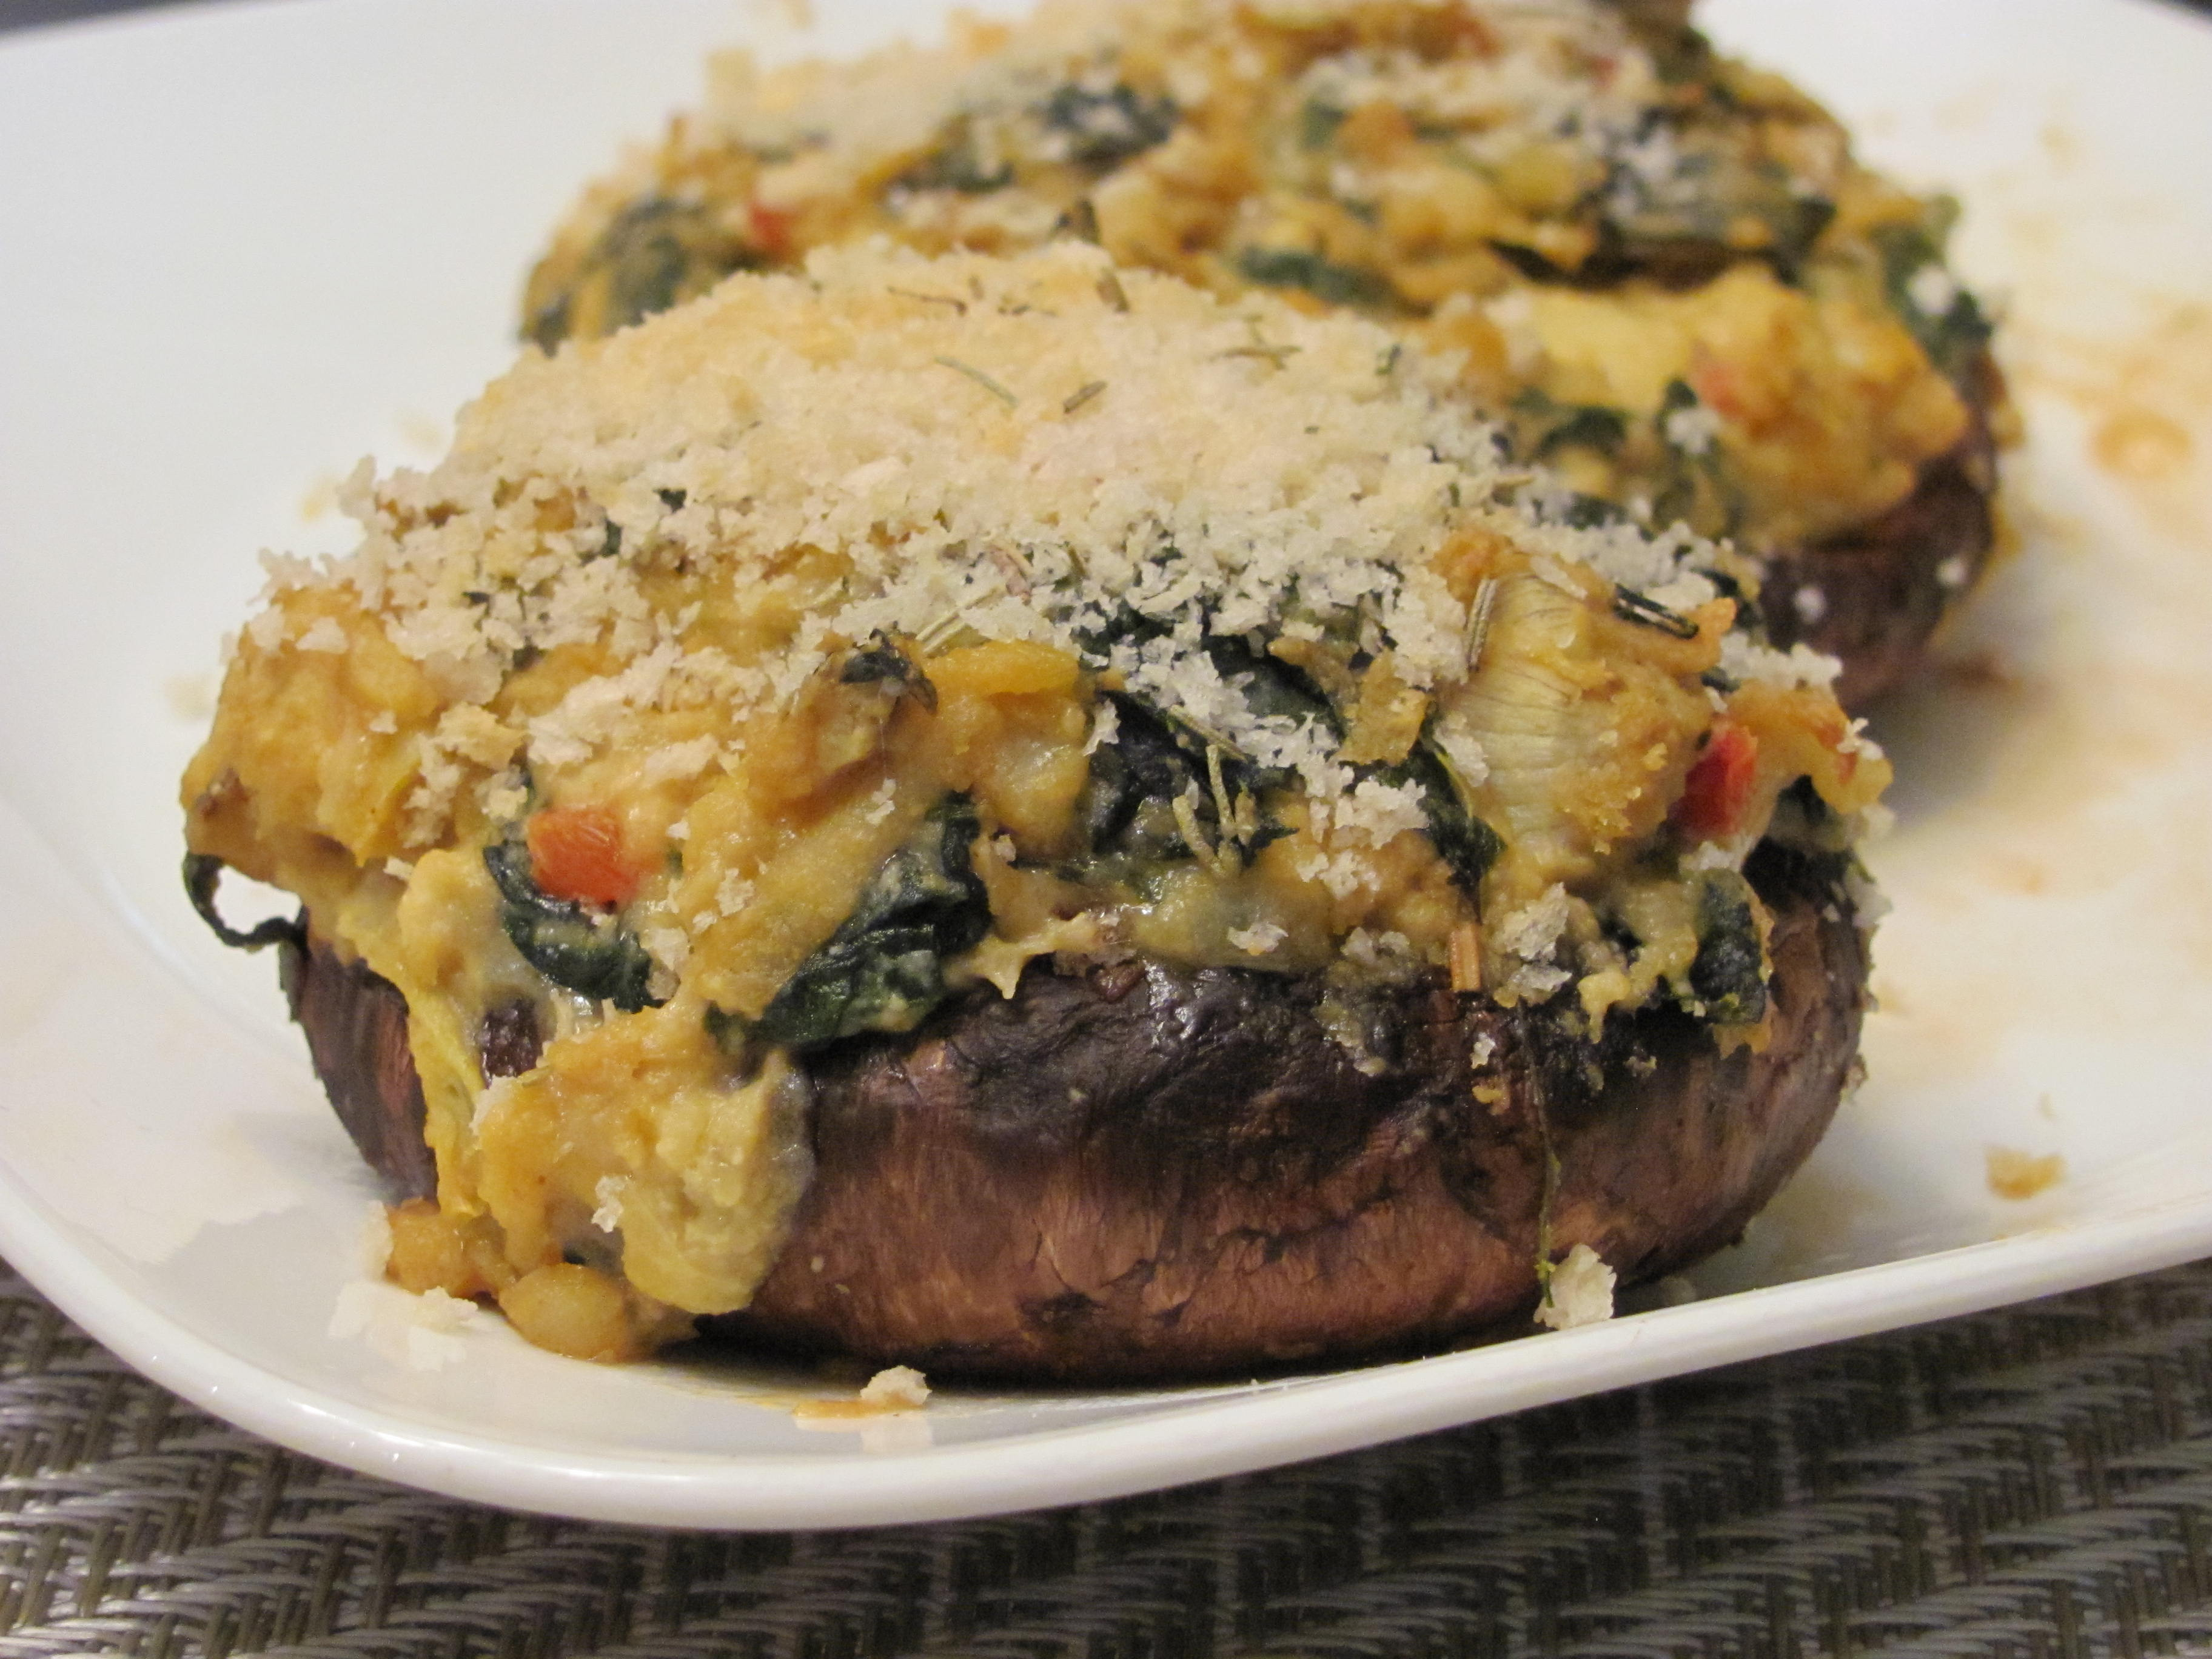 Creamy Spinach and Artichoke Hummus Stuffed Portobello ...